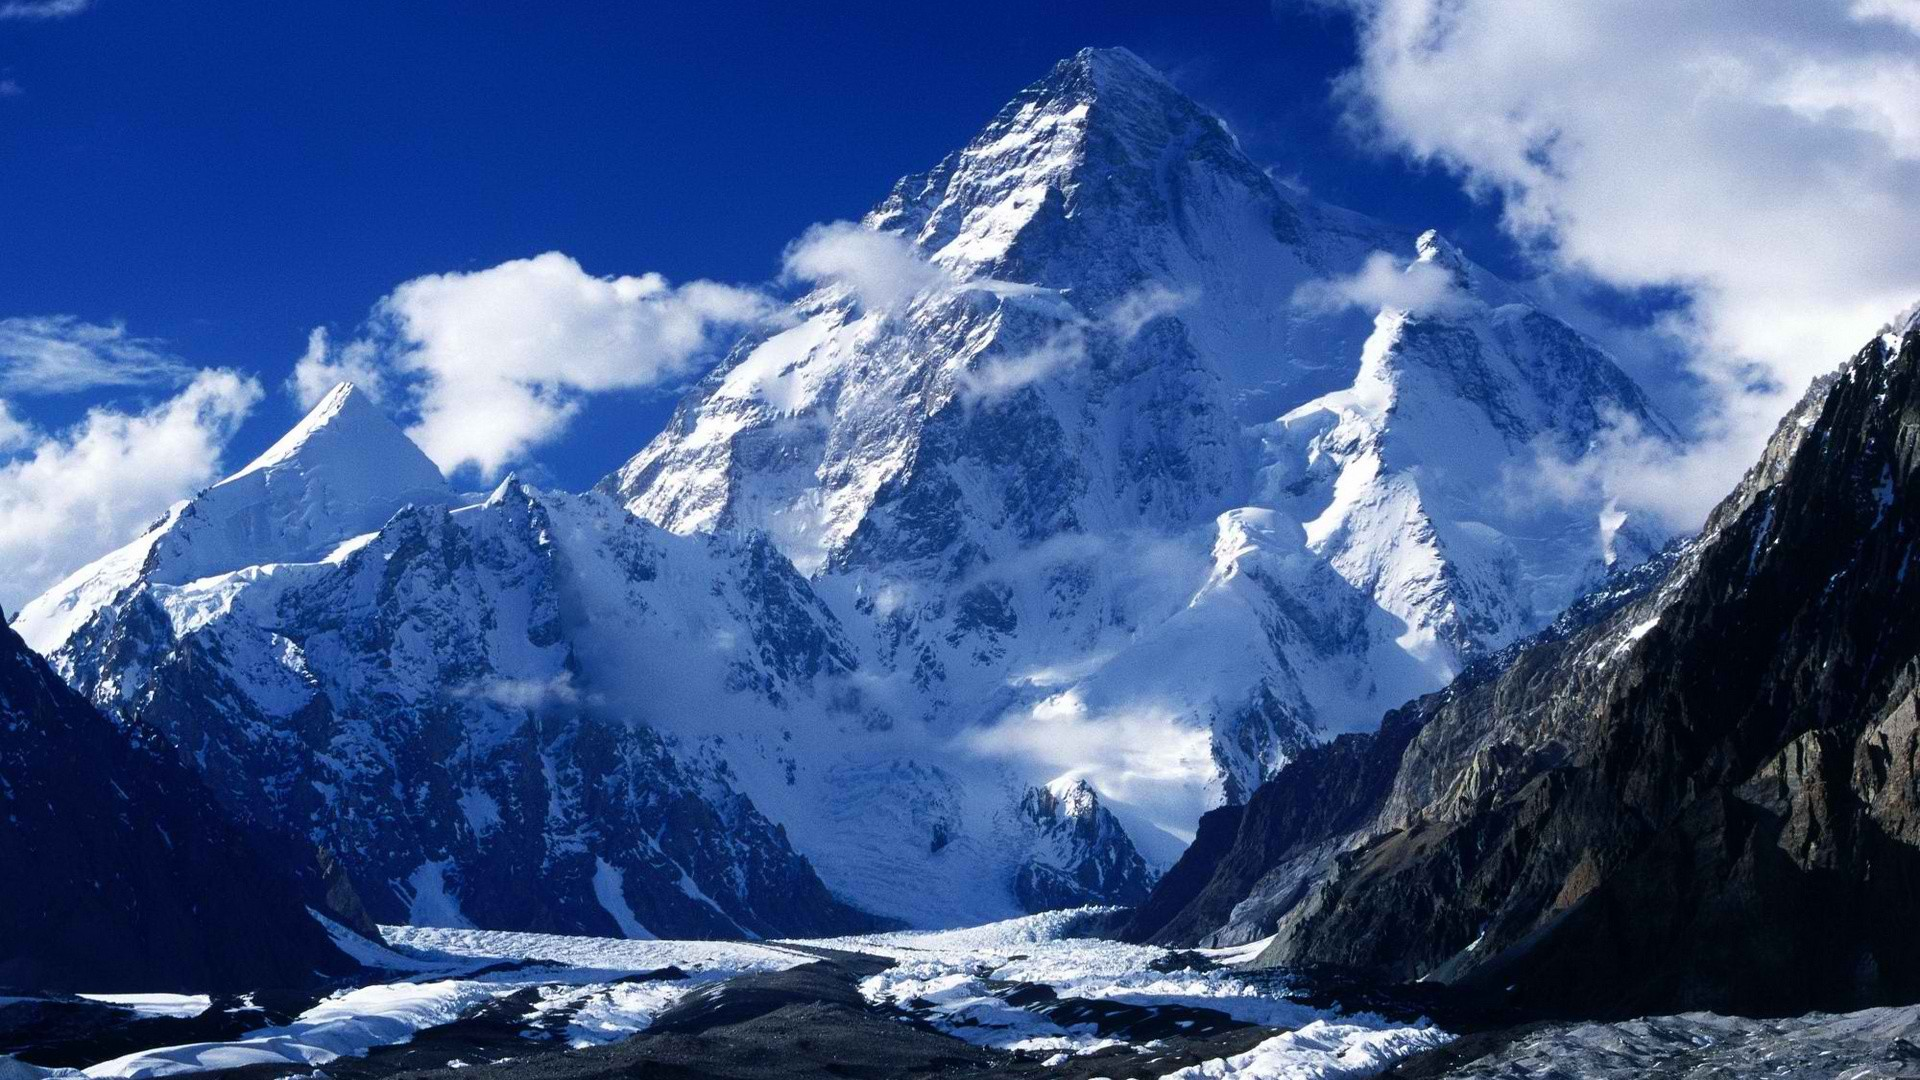 K2 Pakistan wallpaper 1920x1080